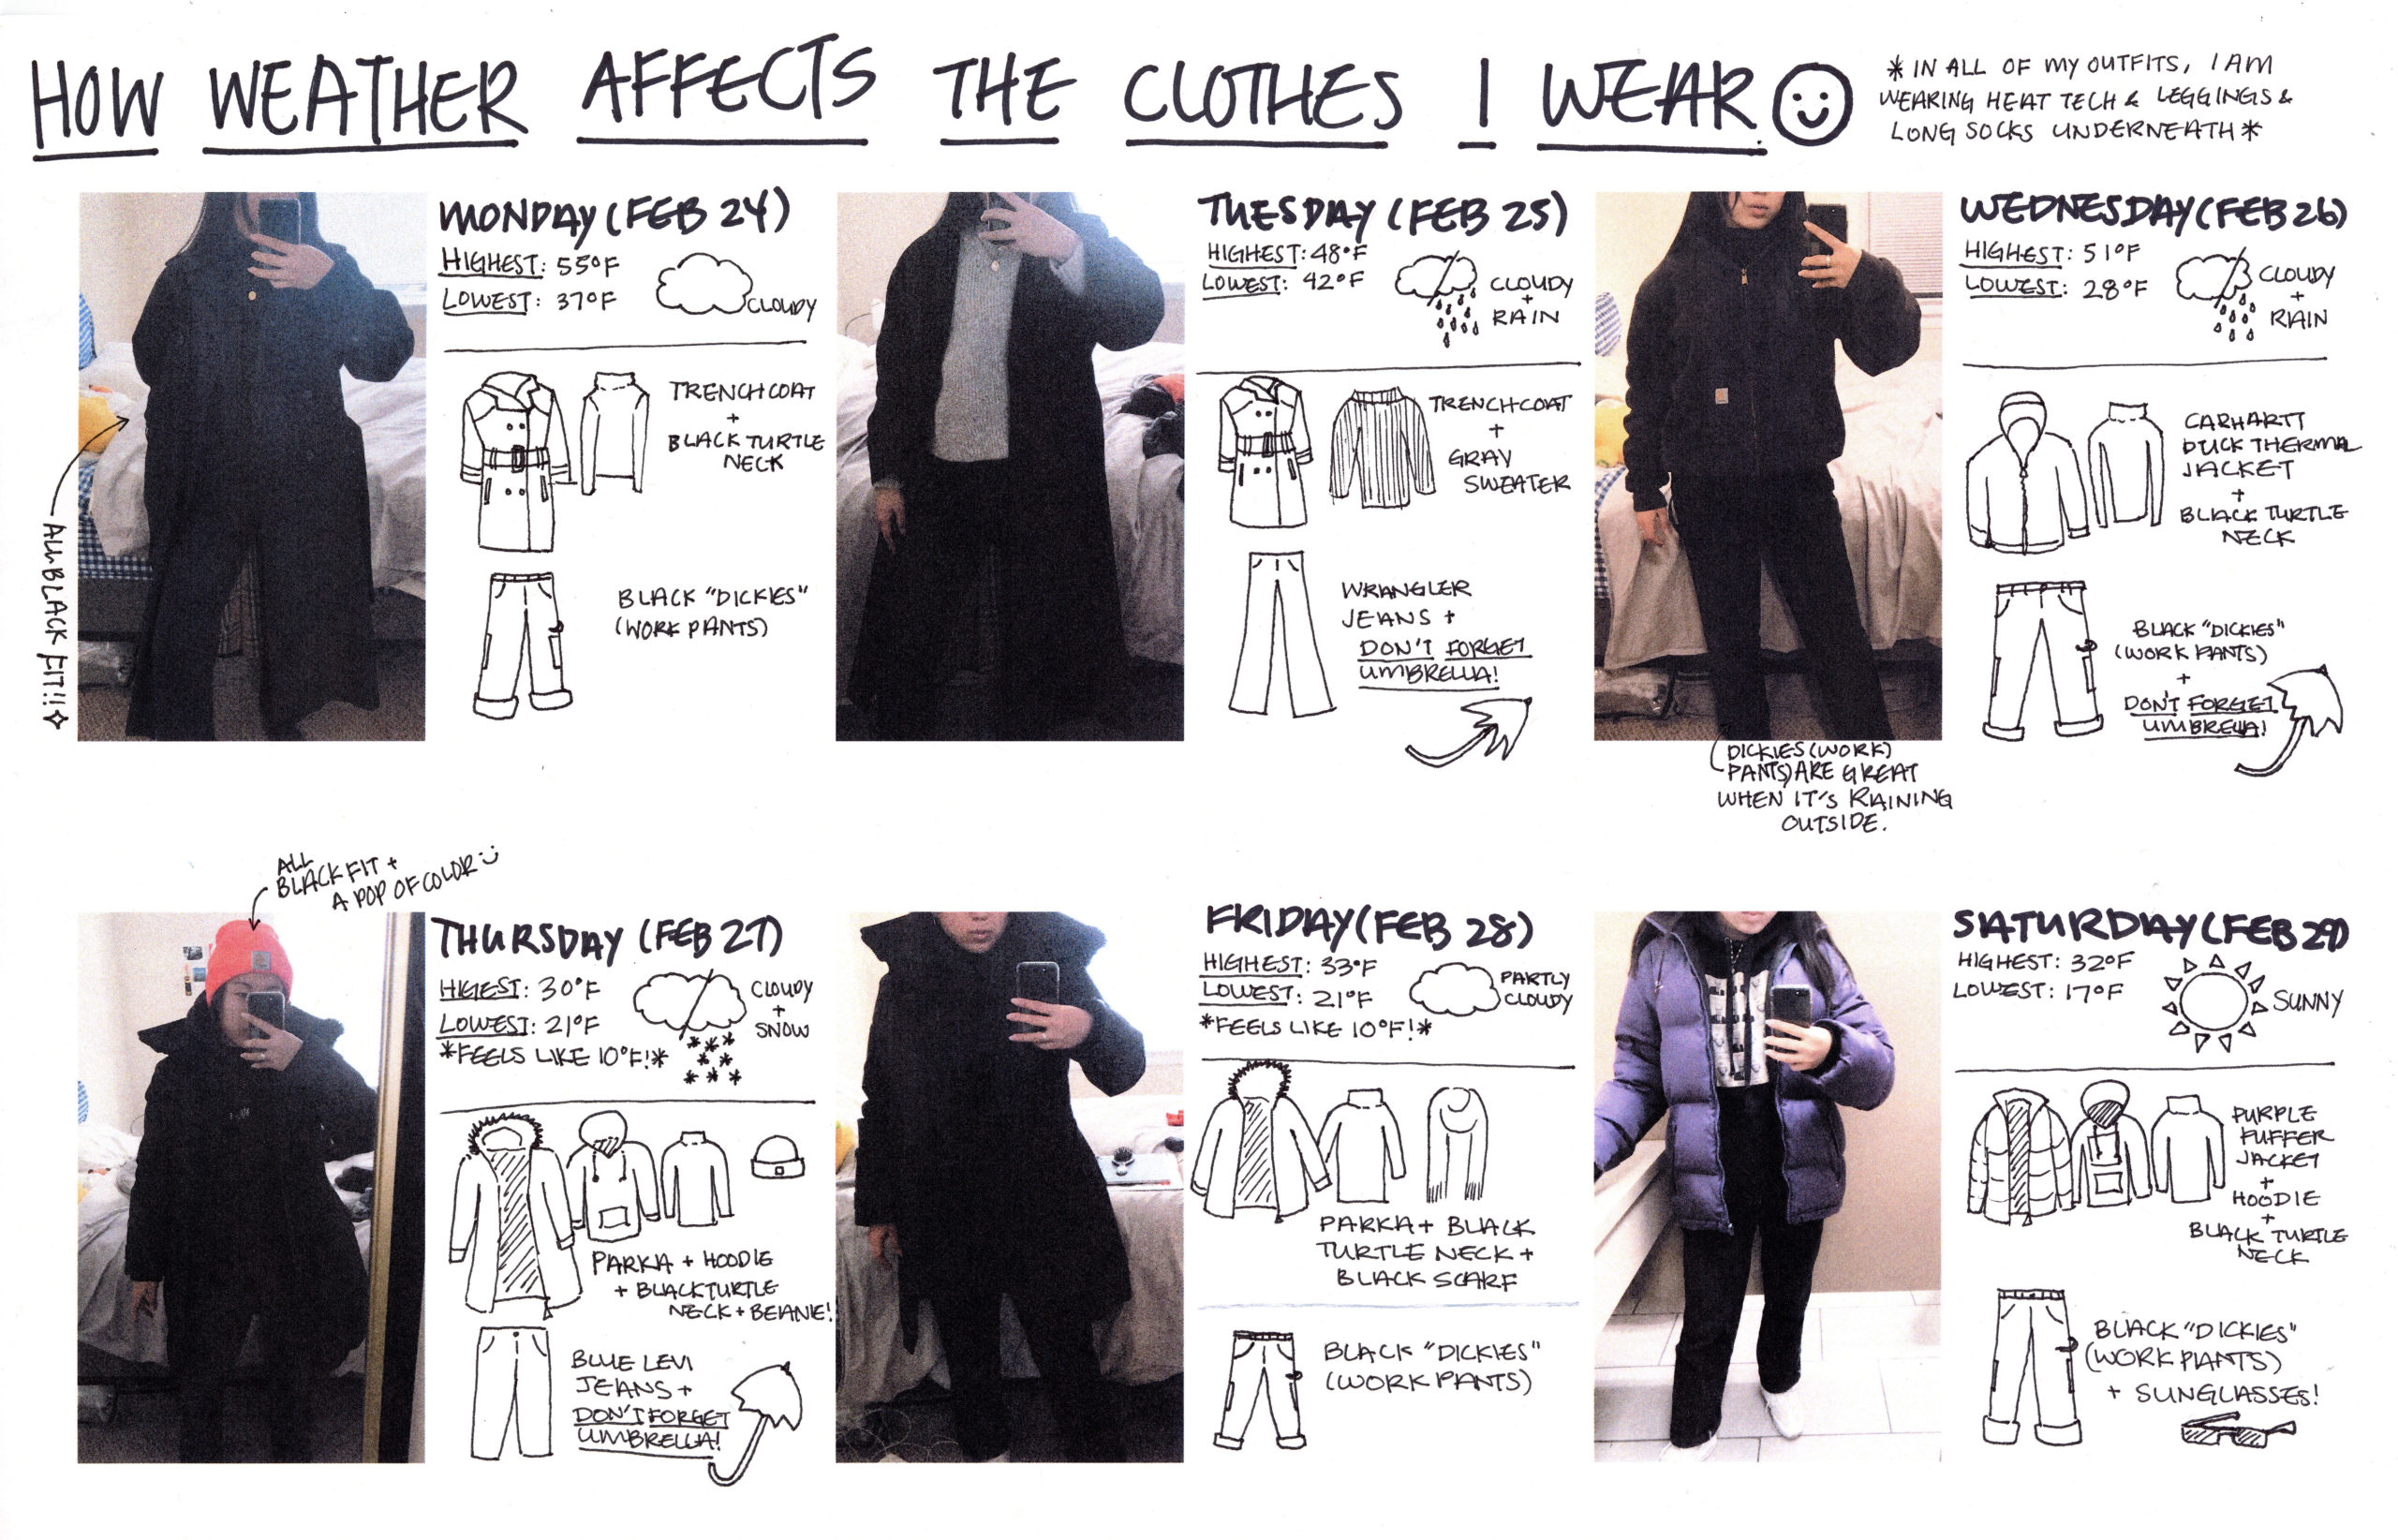 How Are You Persuaded: How the Weather Affects the Clothes I Wear